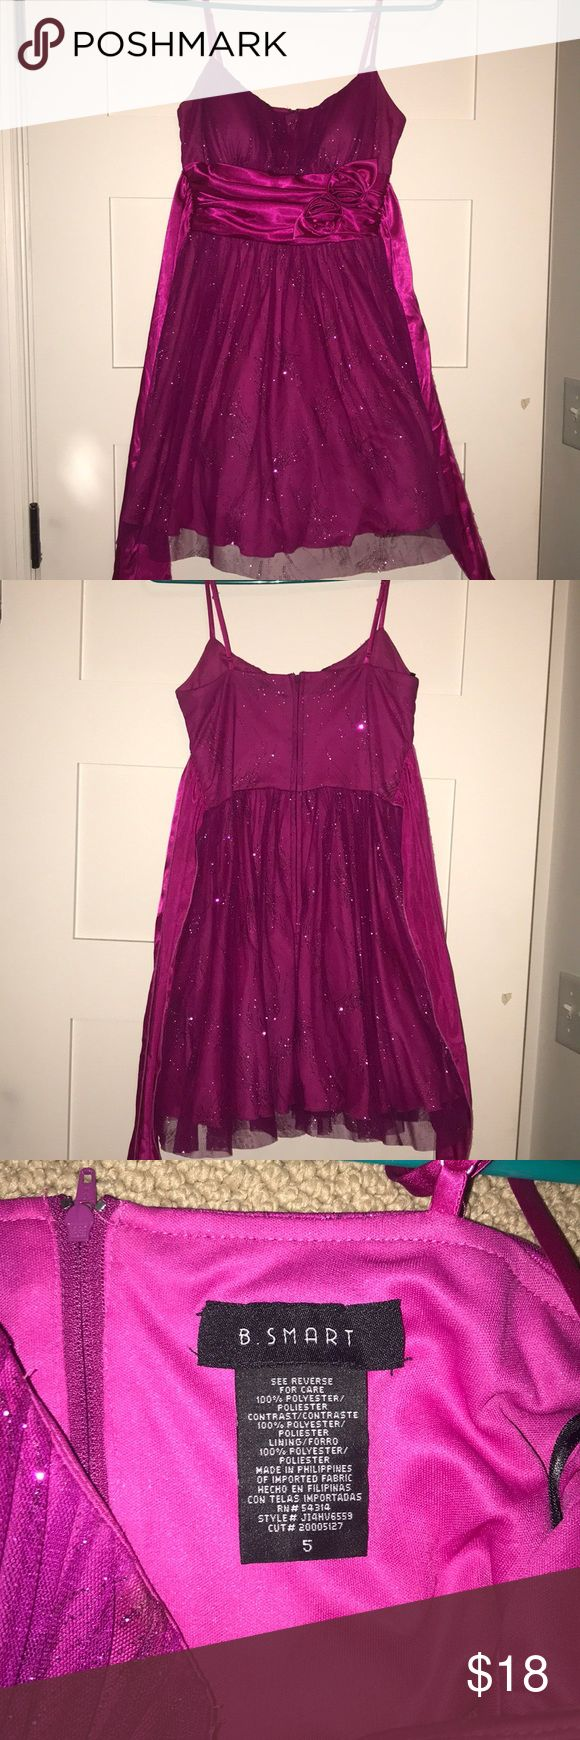 Short Sparkly Pink Dress Zip Up Back Tie Around The Waist Sparkly Pink Pattern 3 Layers Of Fabric Spaghetti Straps Only Worn Once B. Smart Dresses Mini